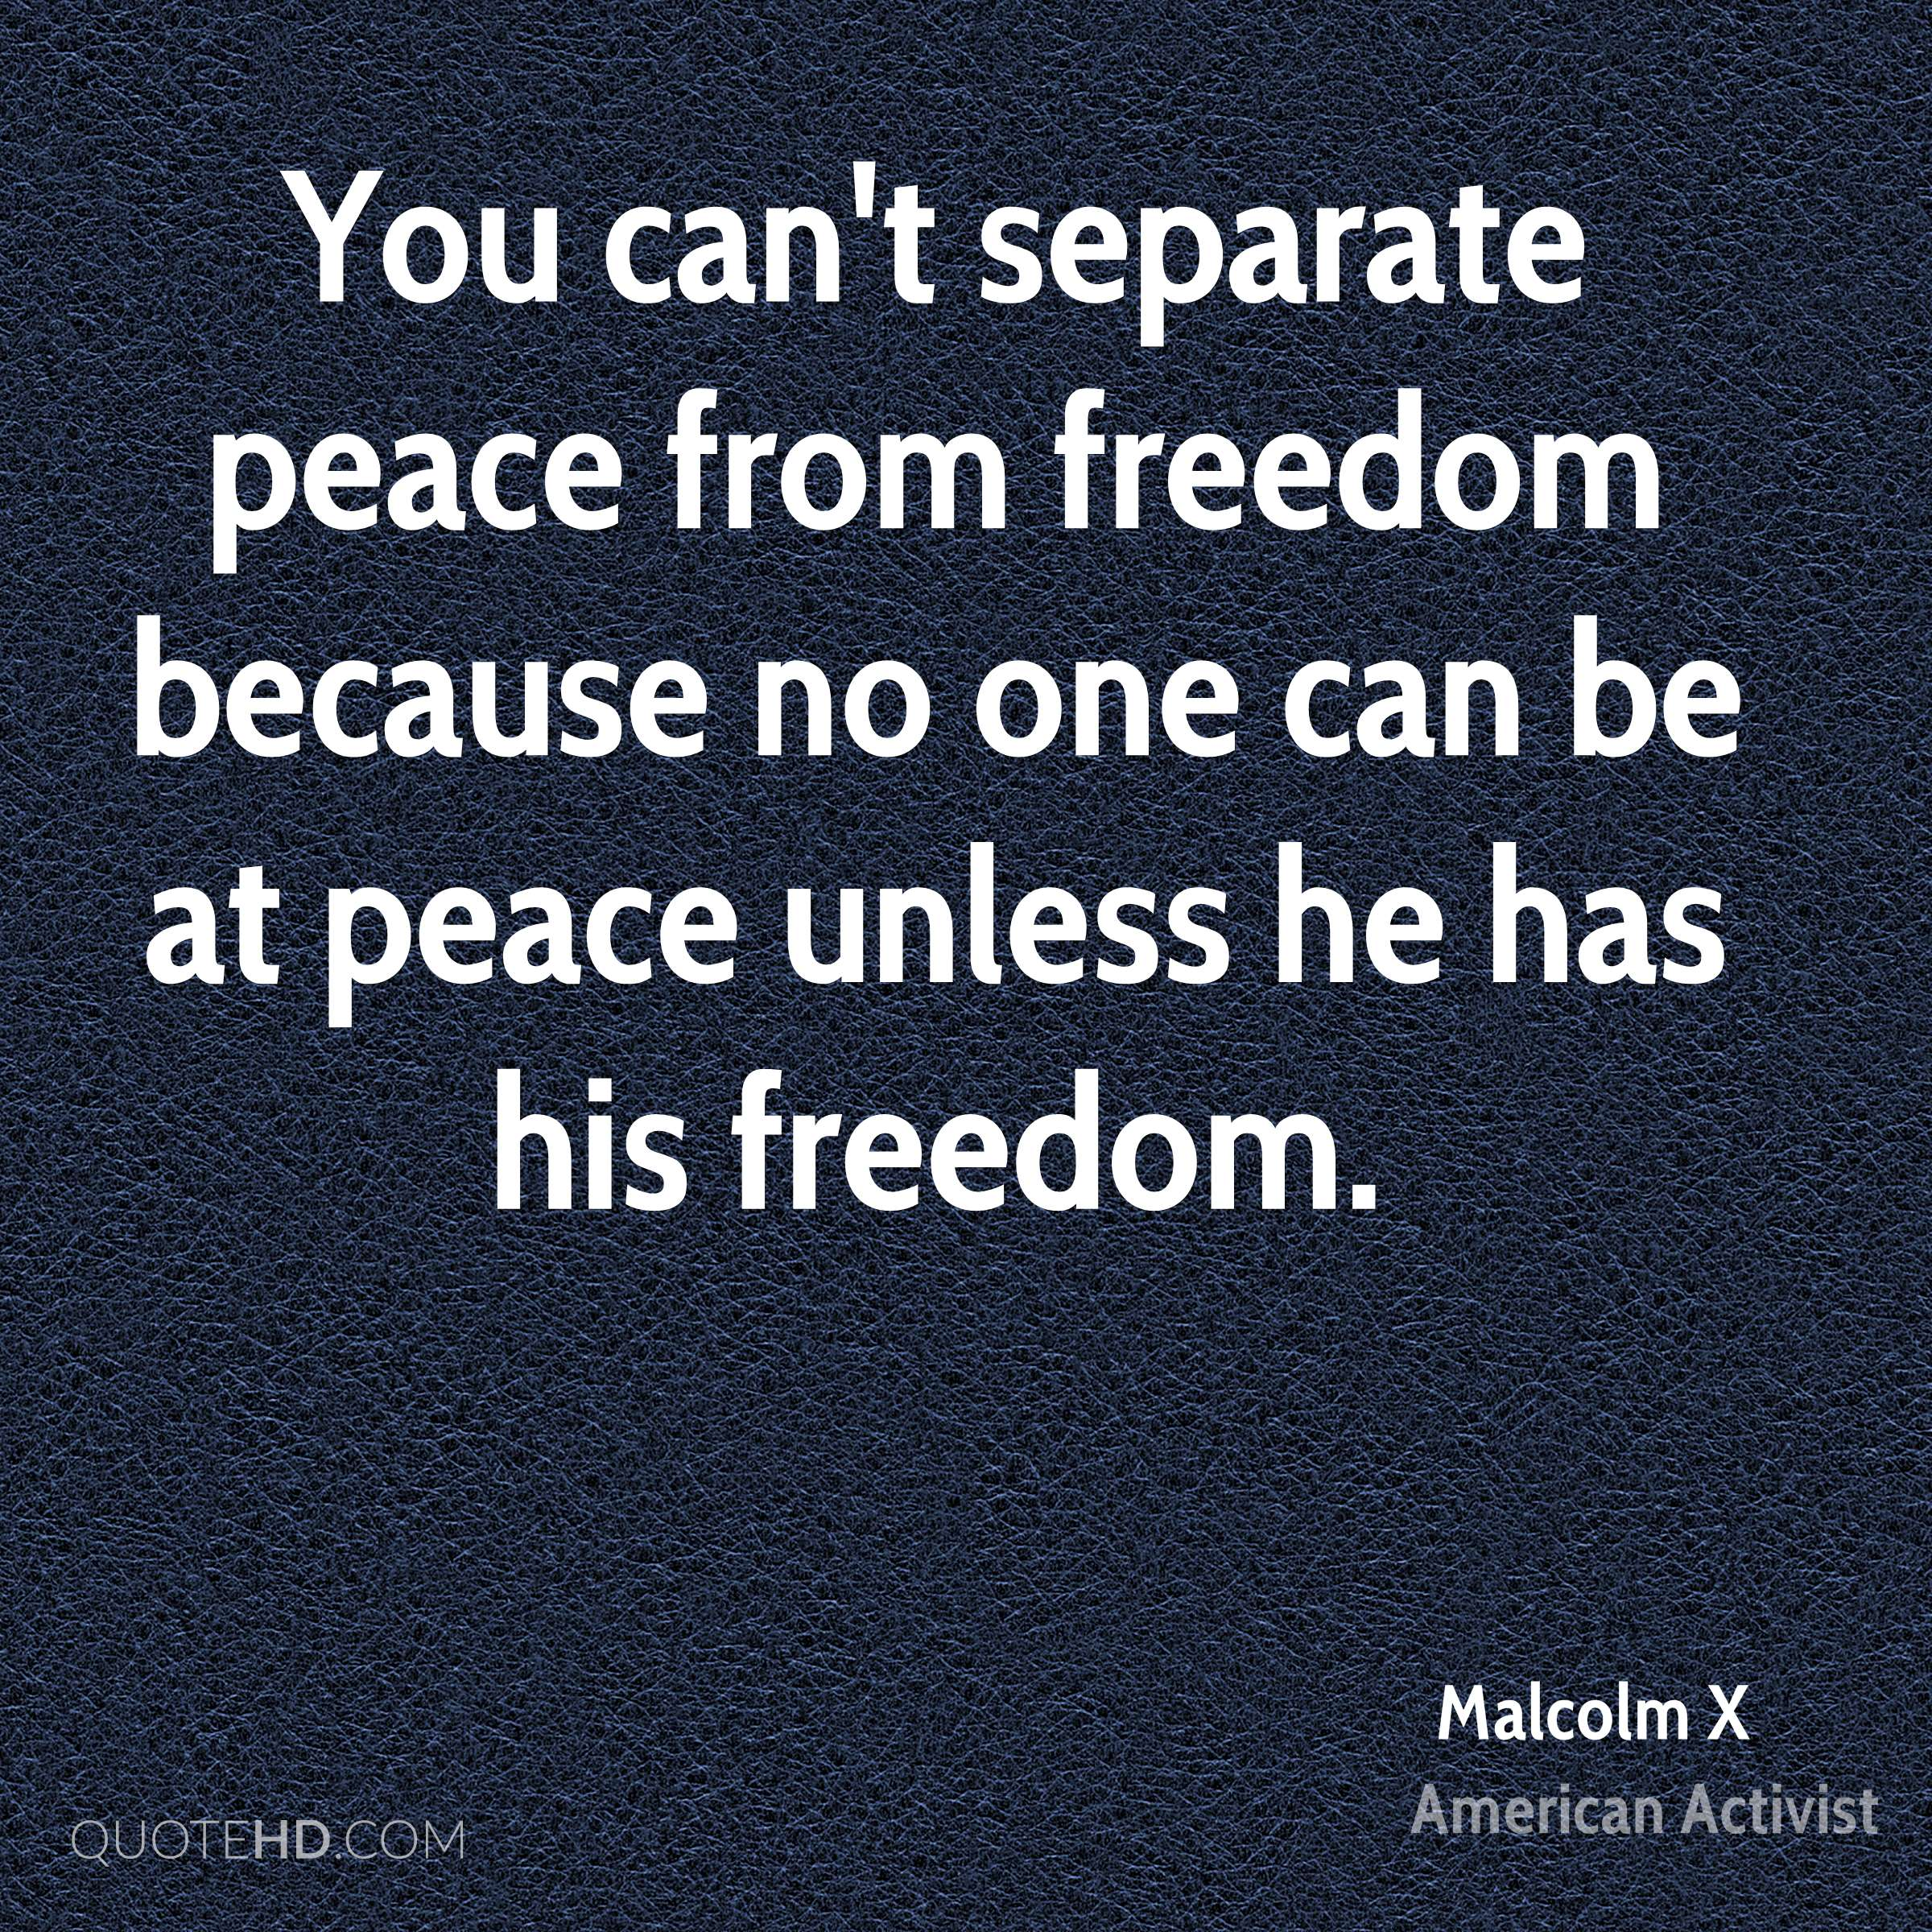 Malcolm X Peace Quotes Quotehd